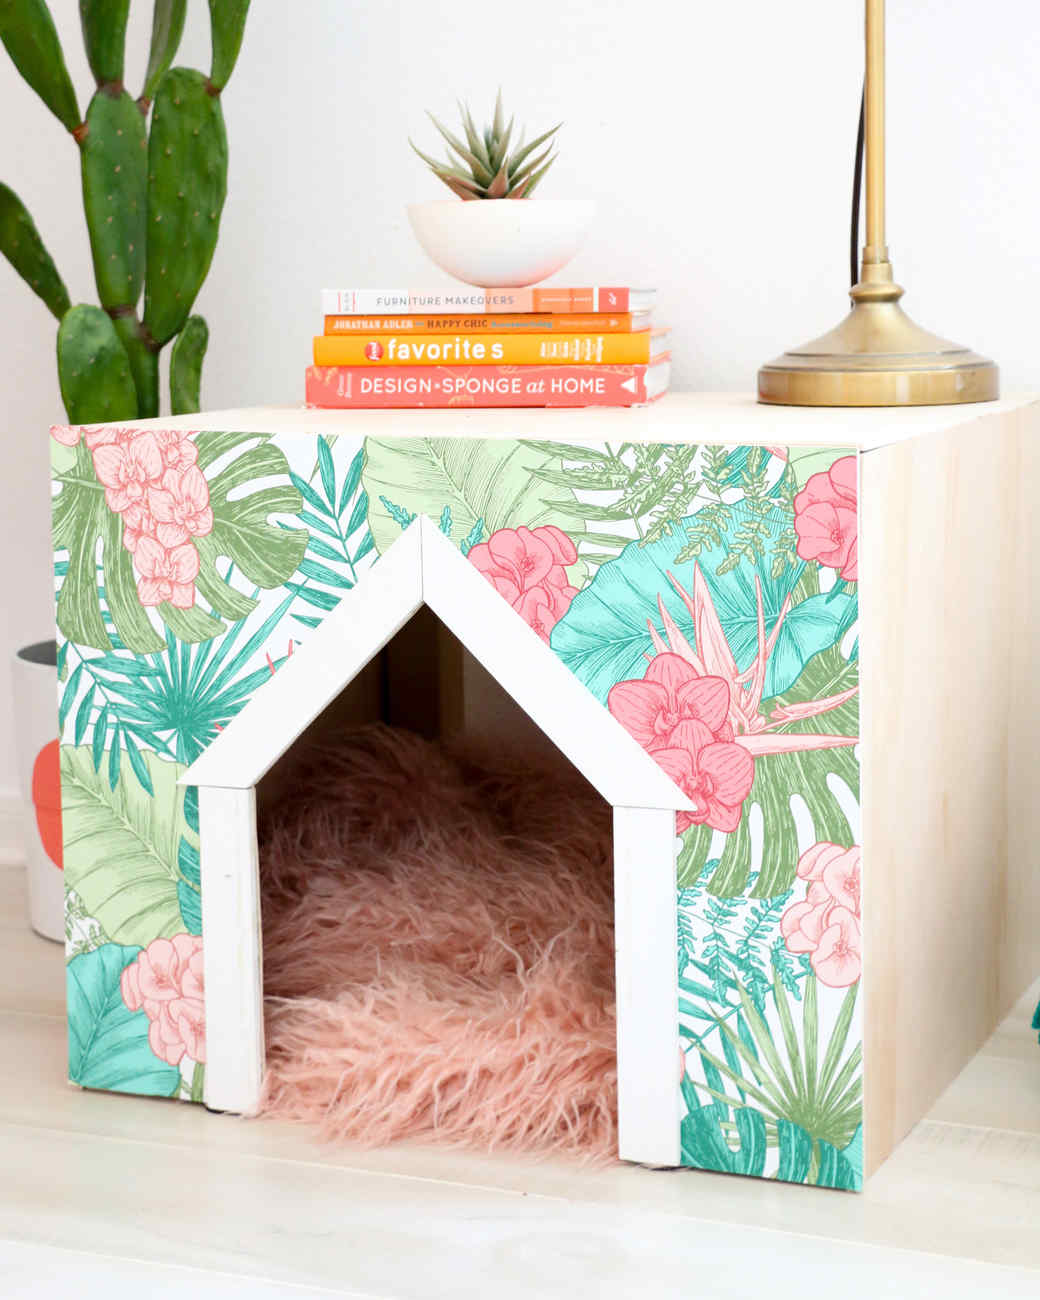 custom dog house with fun print